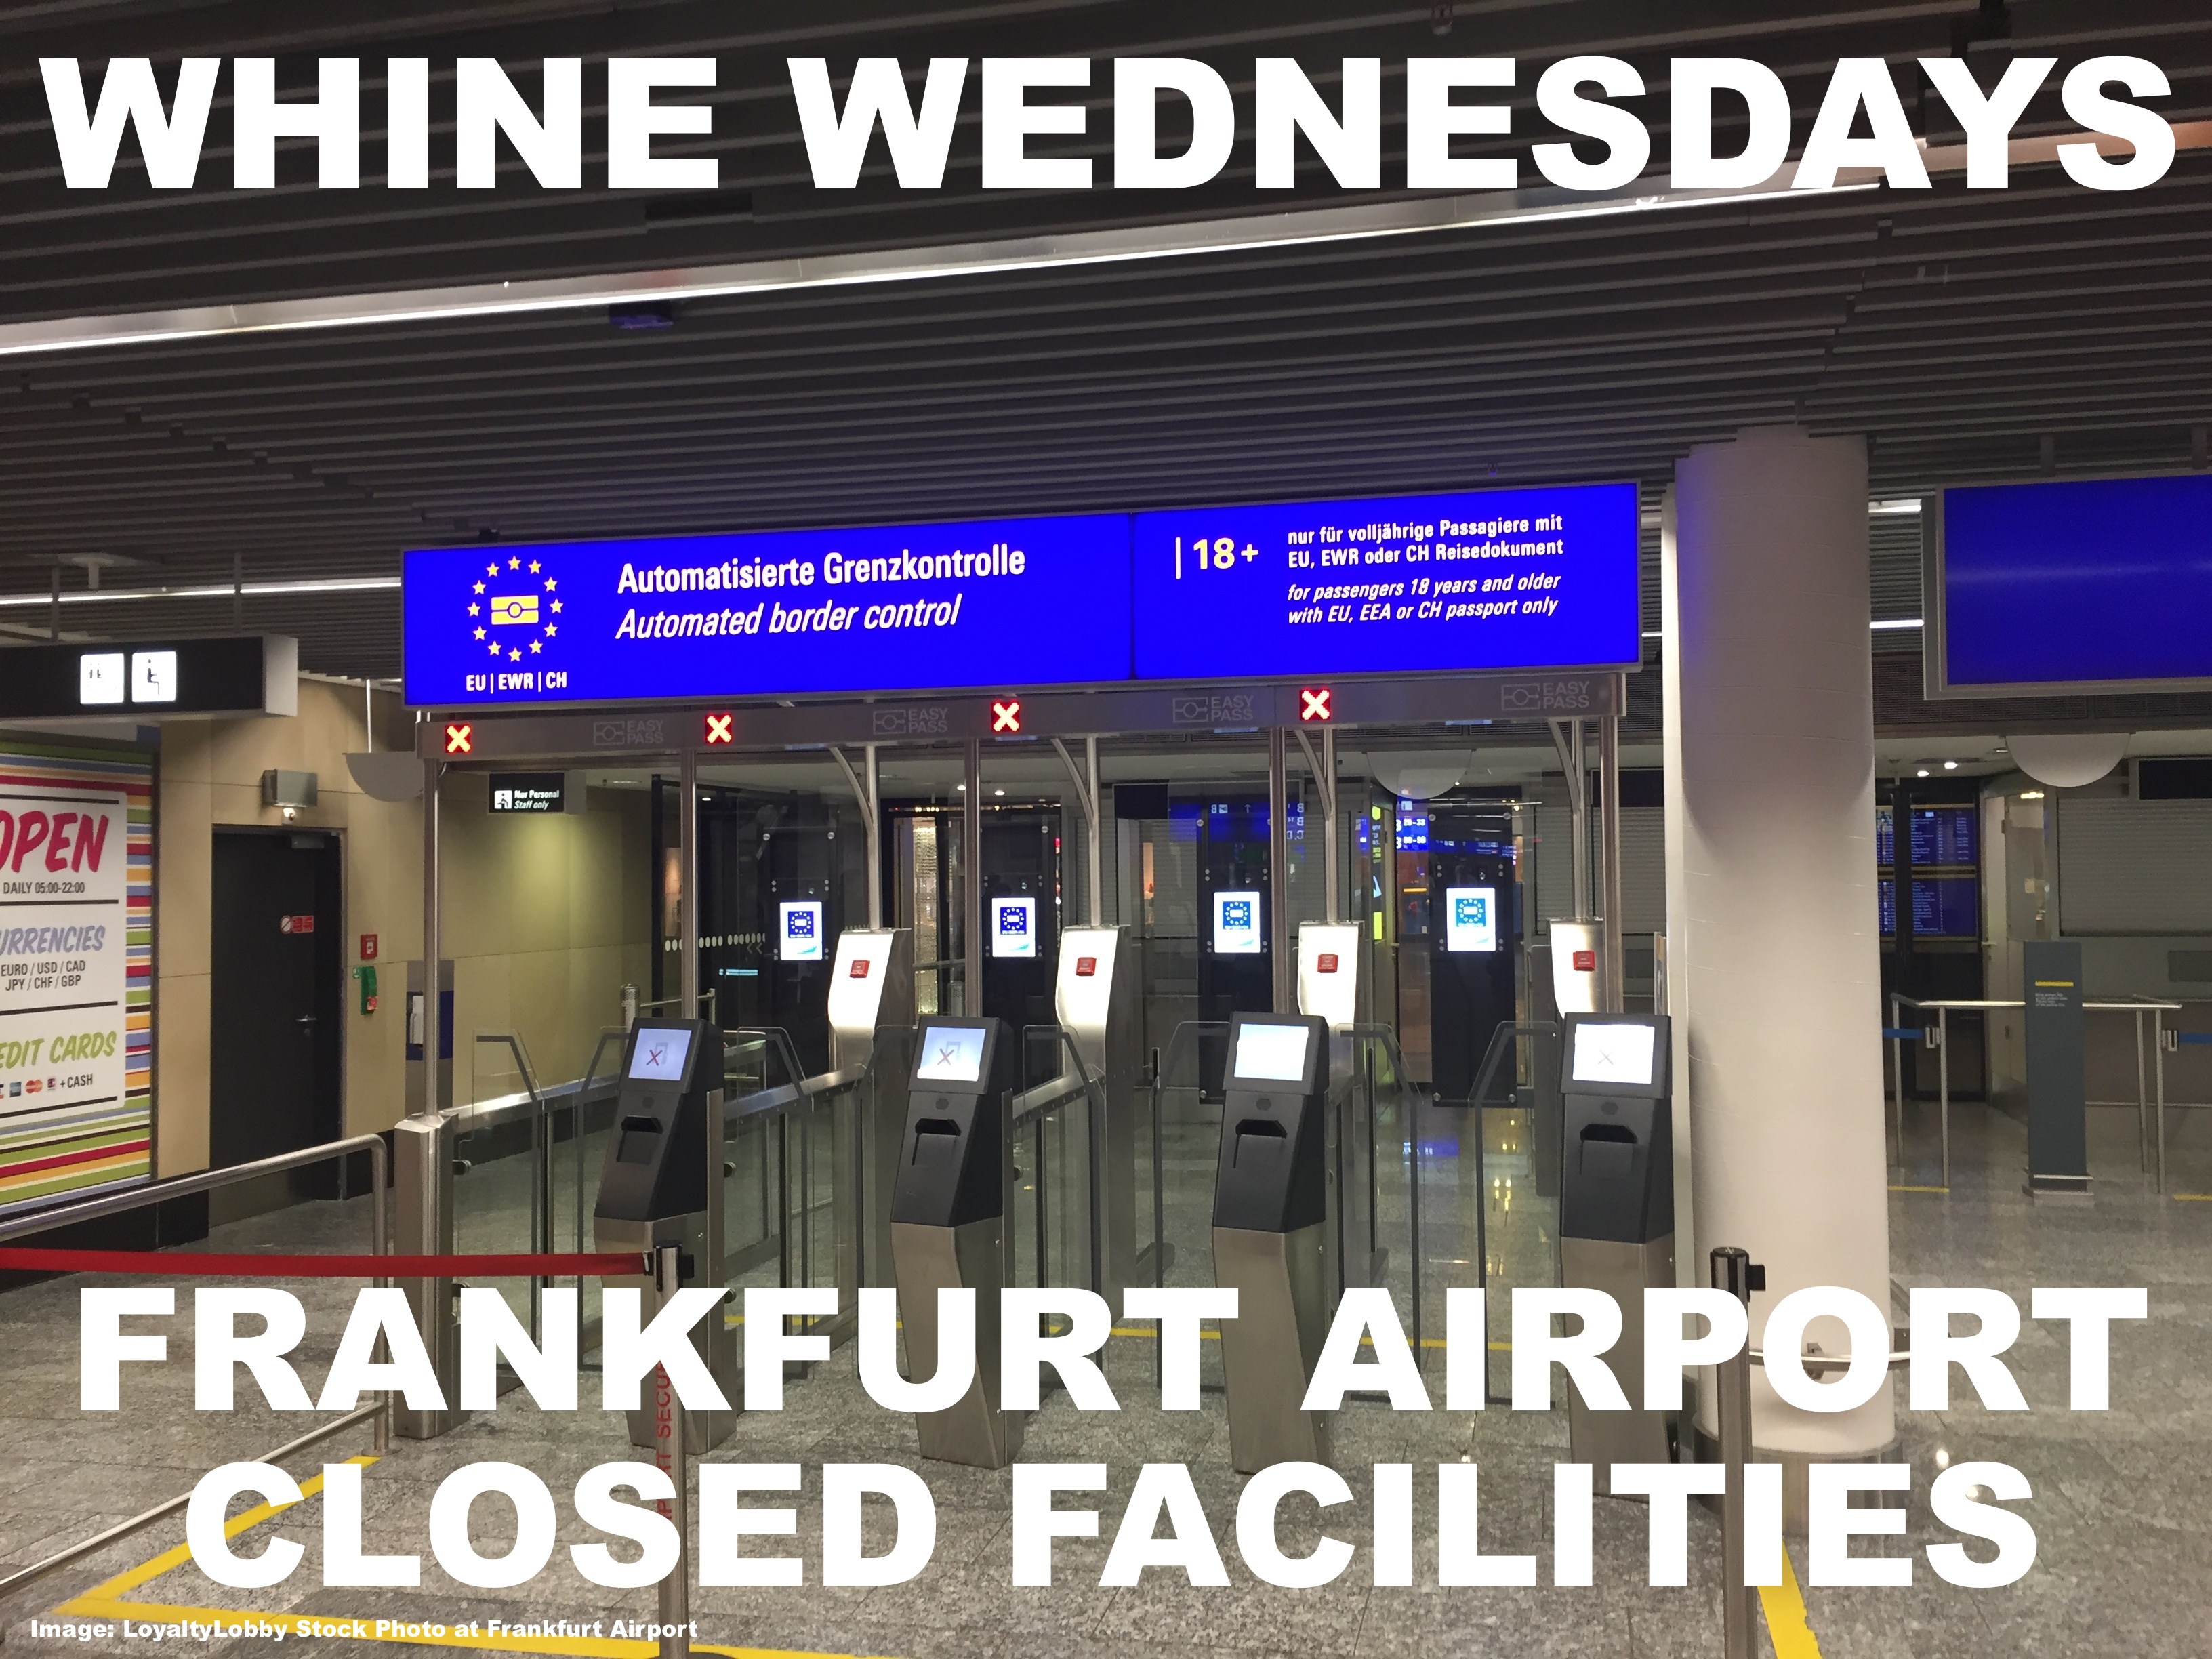 Whine Wednesdays Closed Electronic Immigration Counters